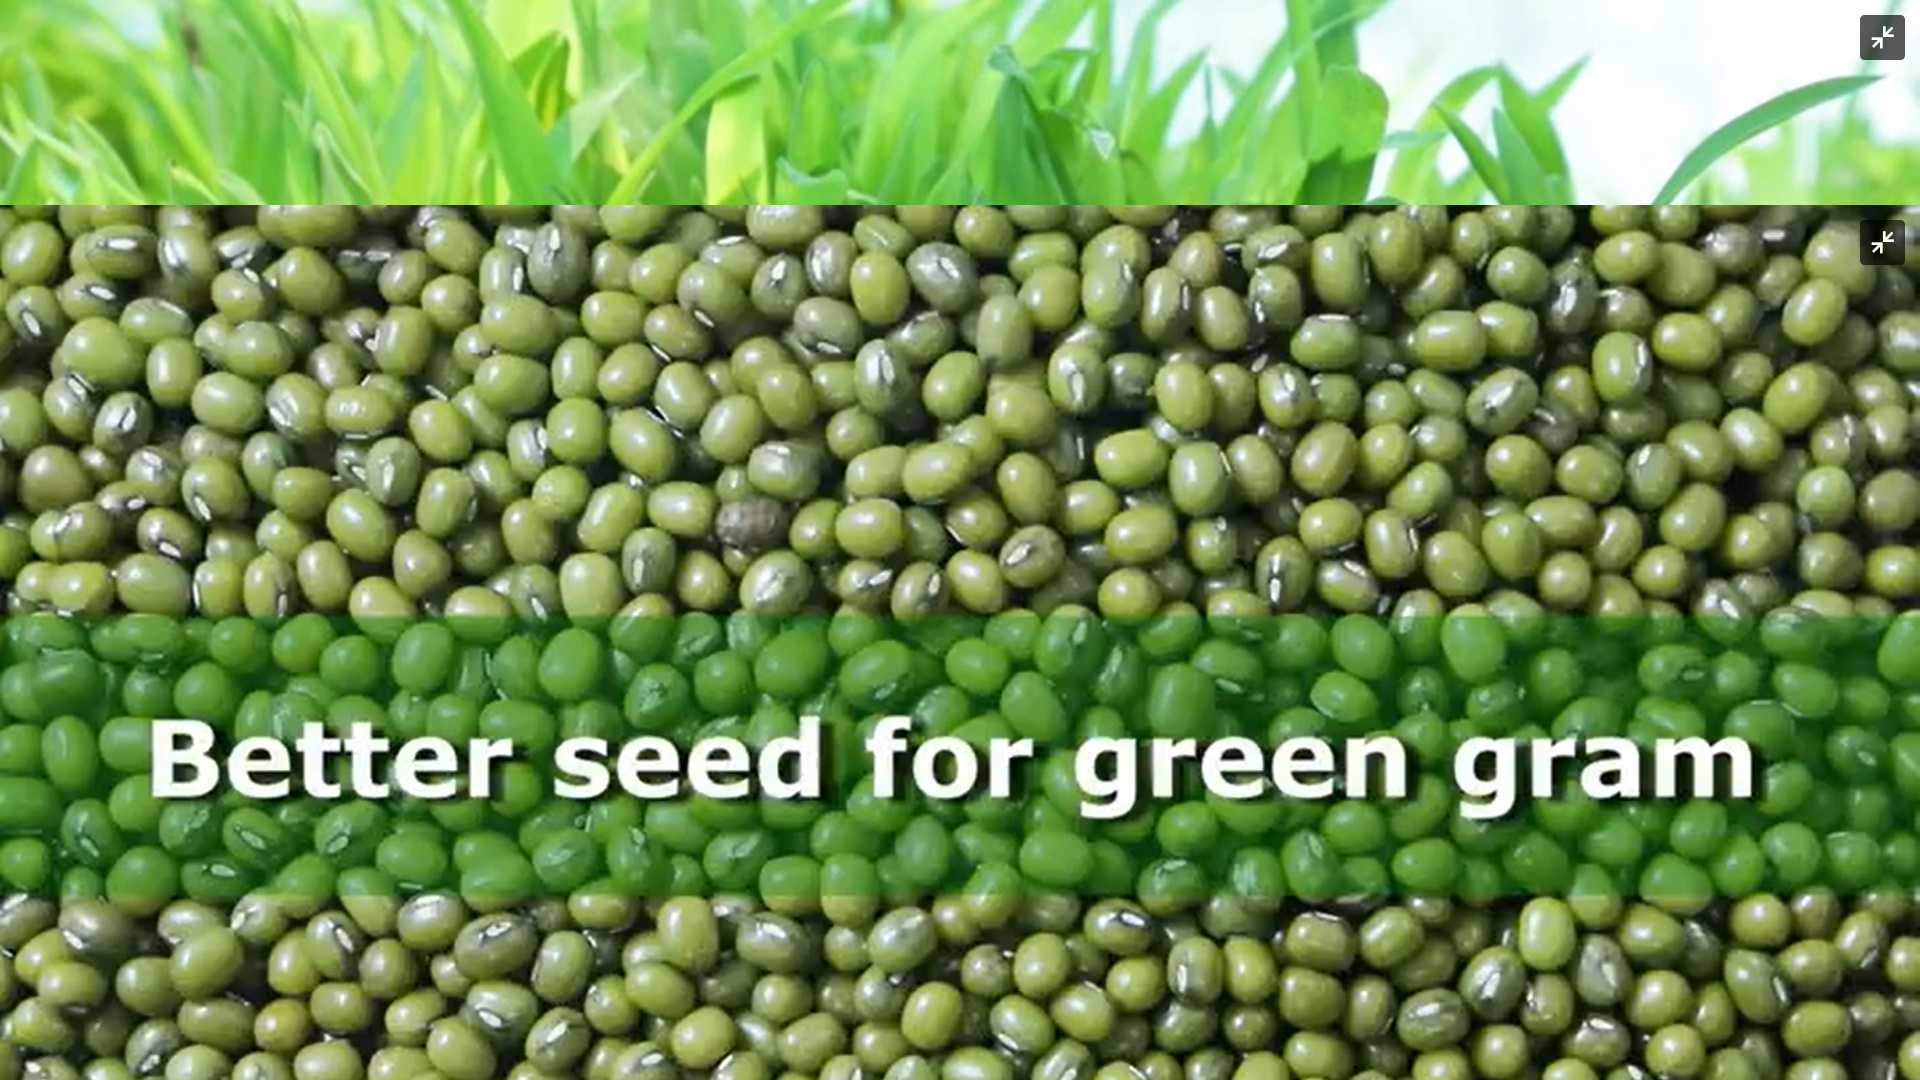 Better Seed for Green Gram